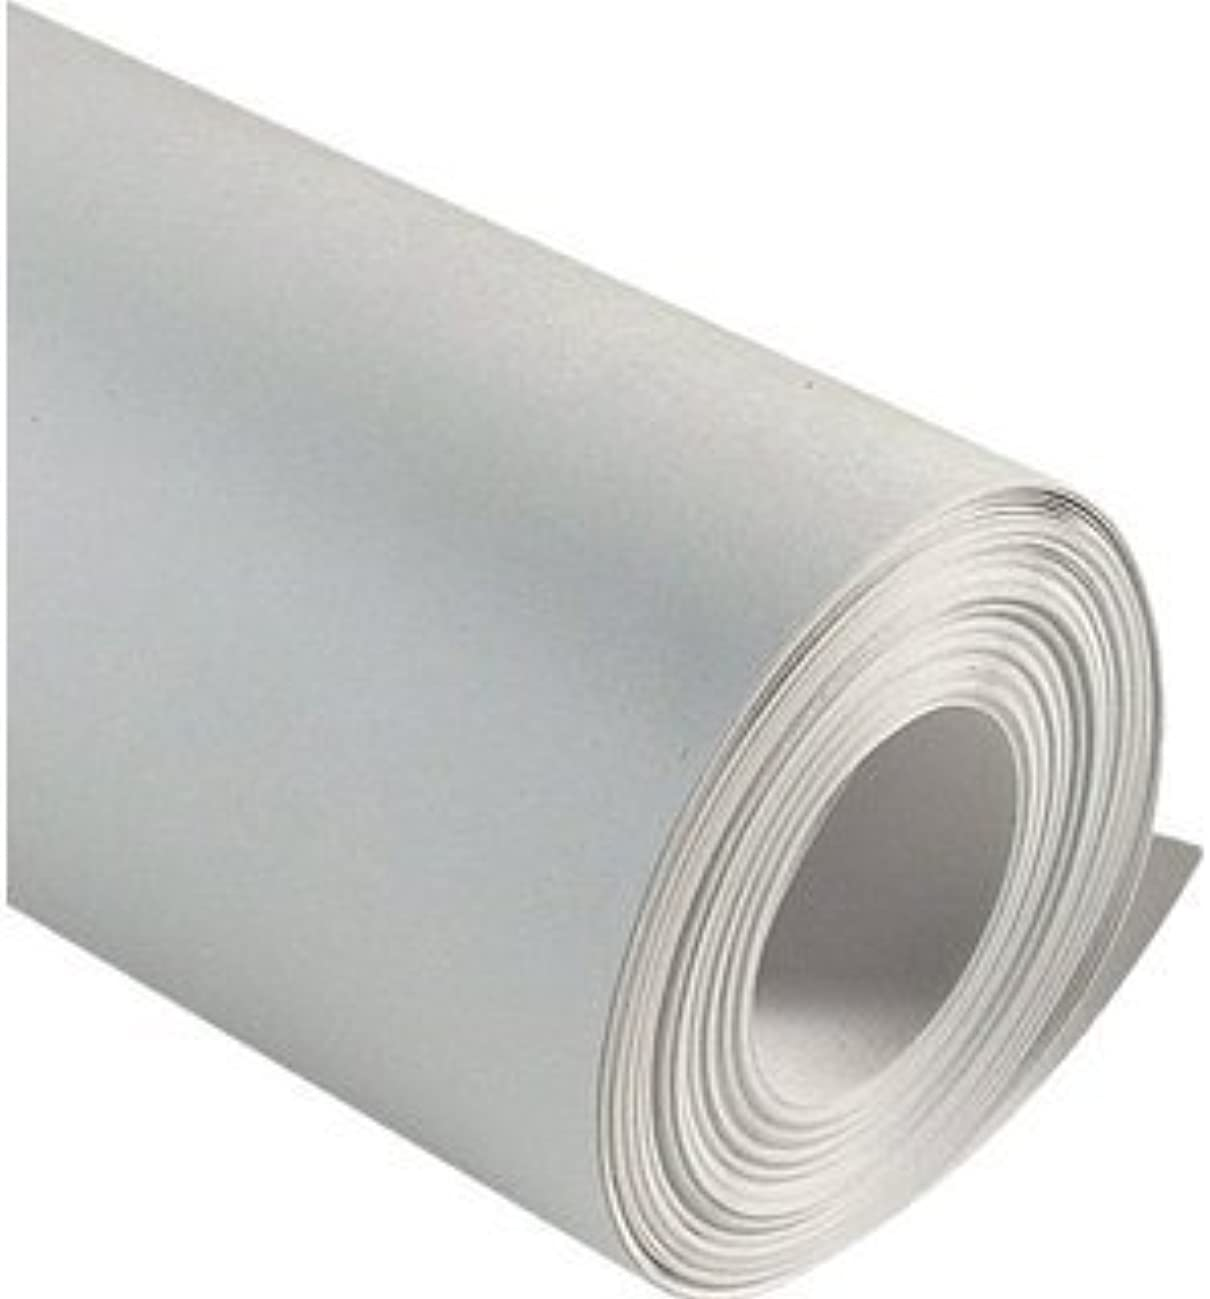 Borden & Riley #410 Charcoal/Pastel Paper, 36 Inches x 5 Yards Per Roll, 80 lb, Portrait-Gray, 1 Roll Each (410R360500)